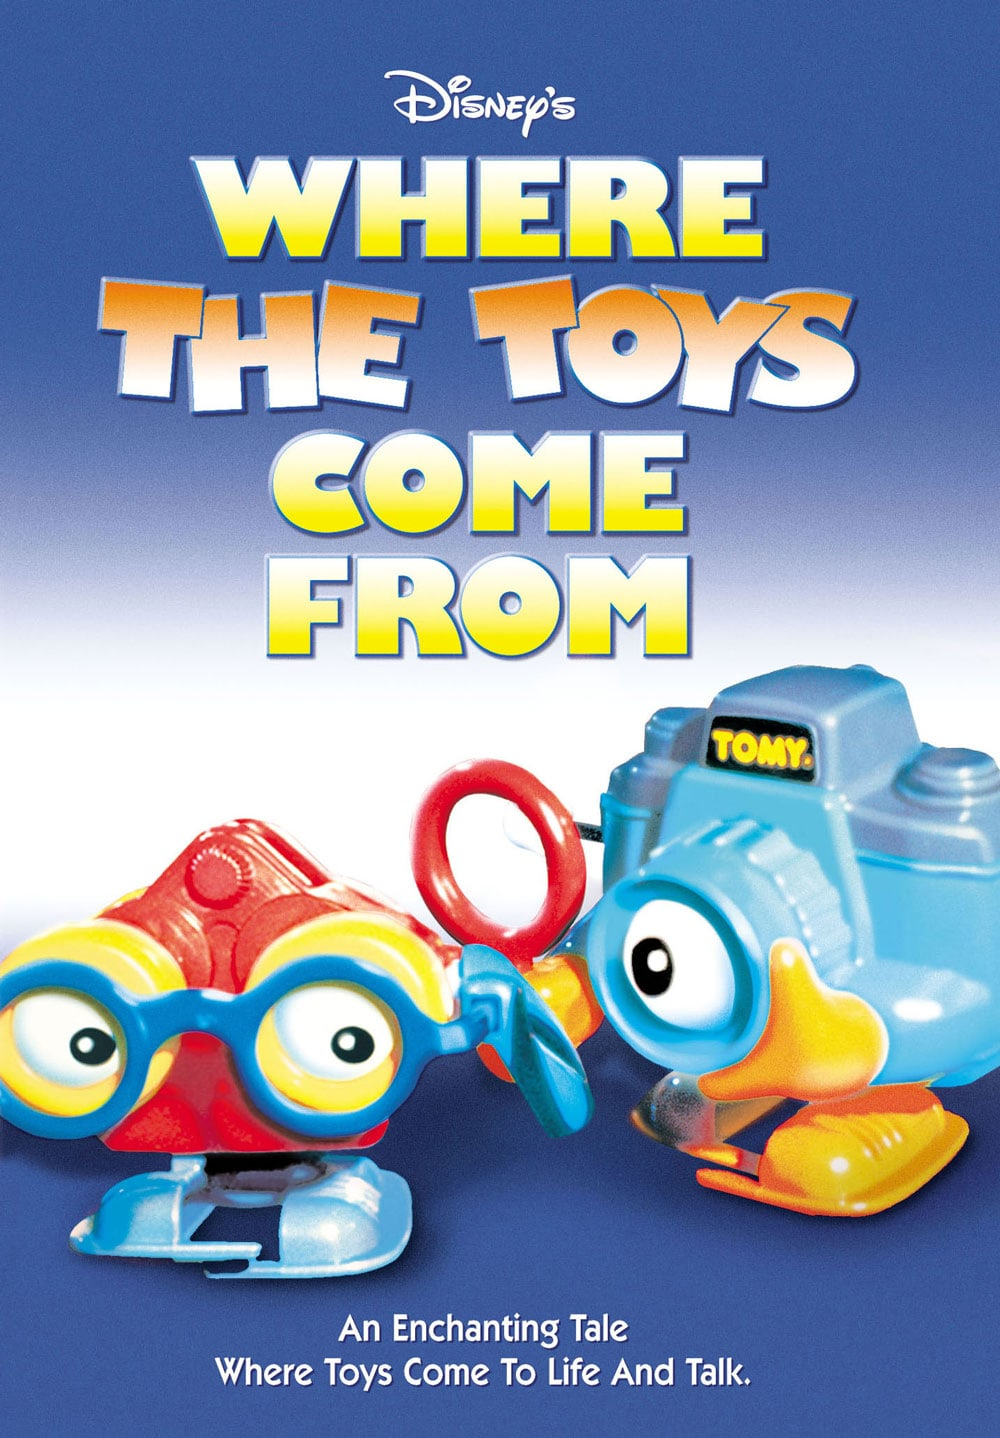 Disney's Where the Toys Come From movie poster